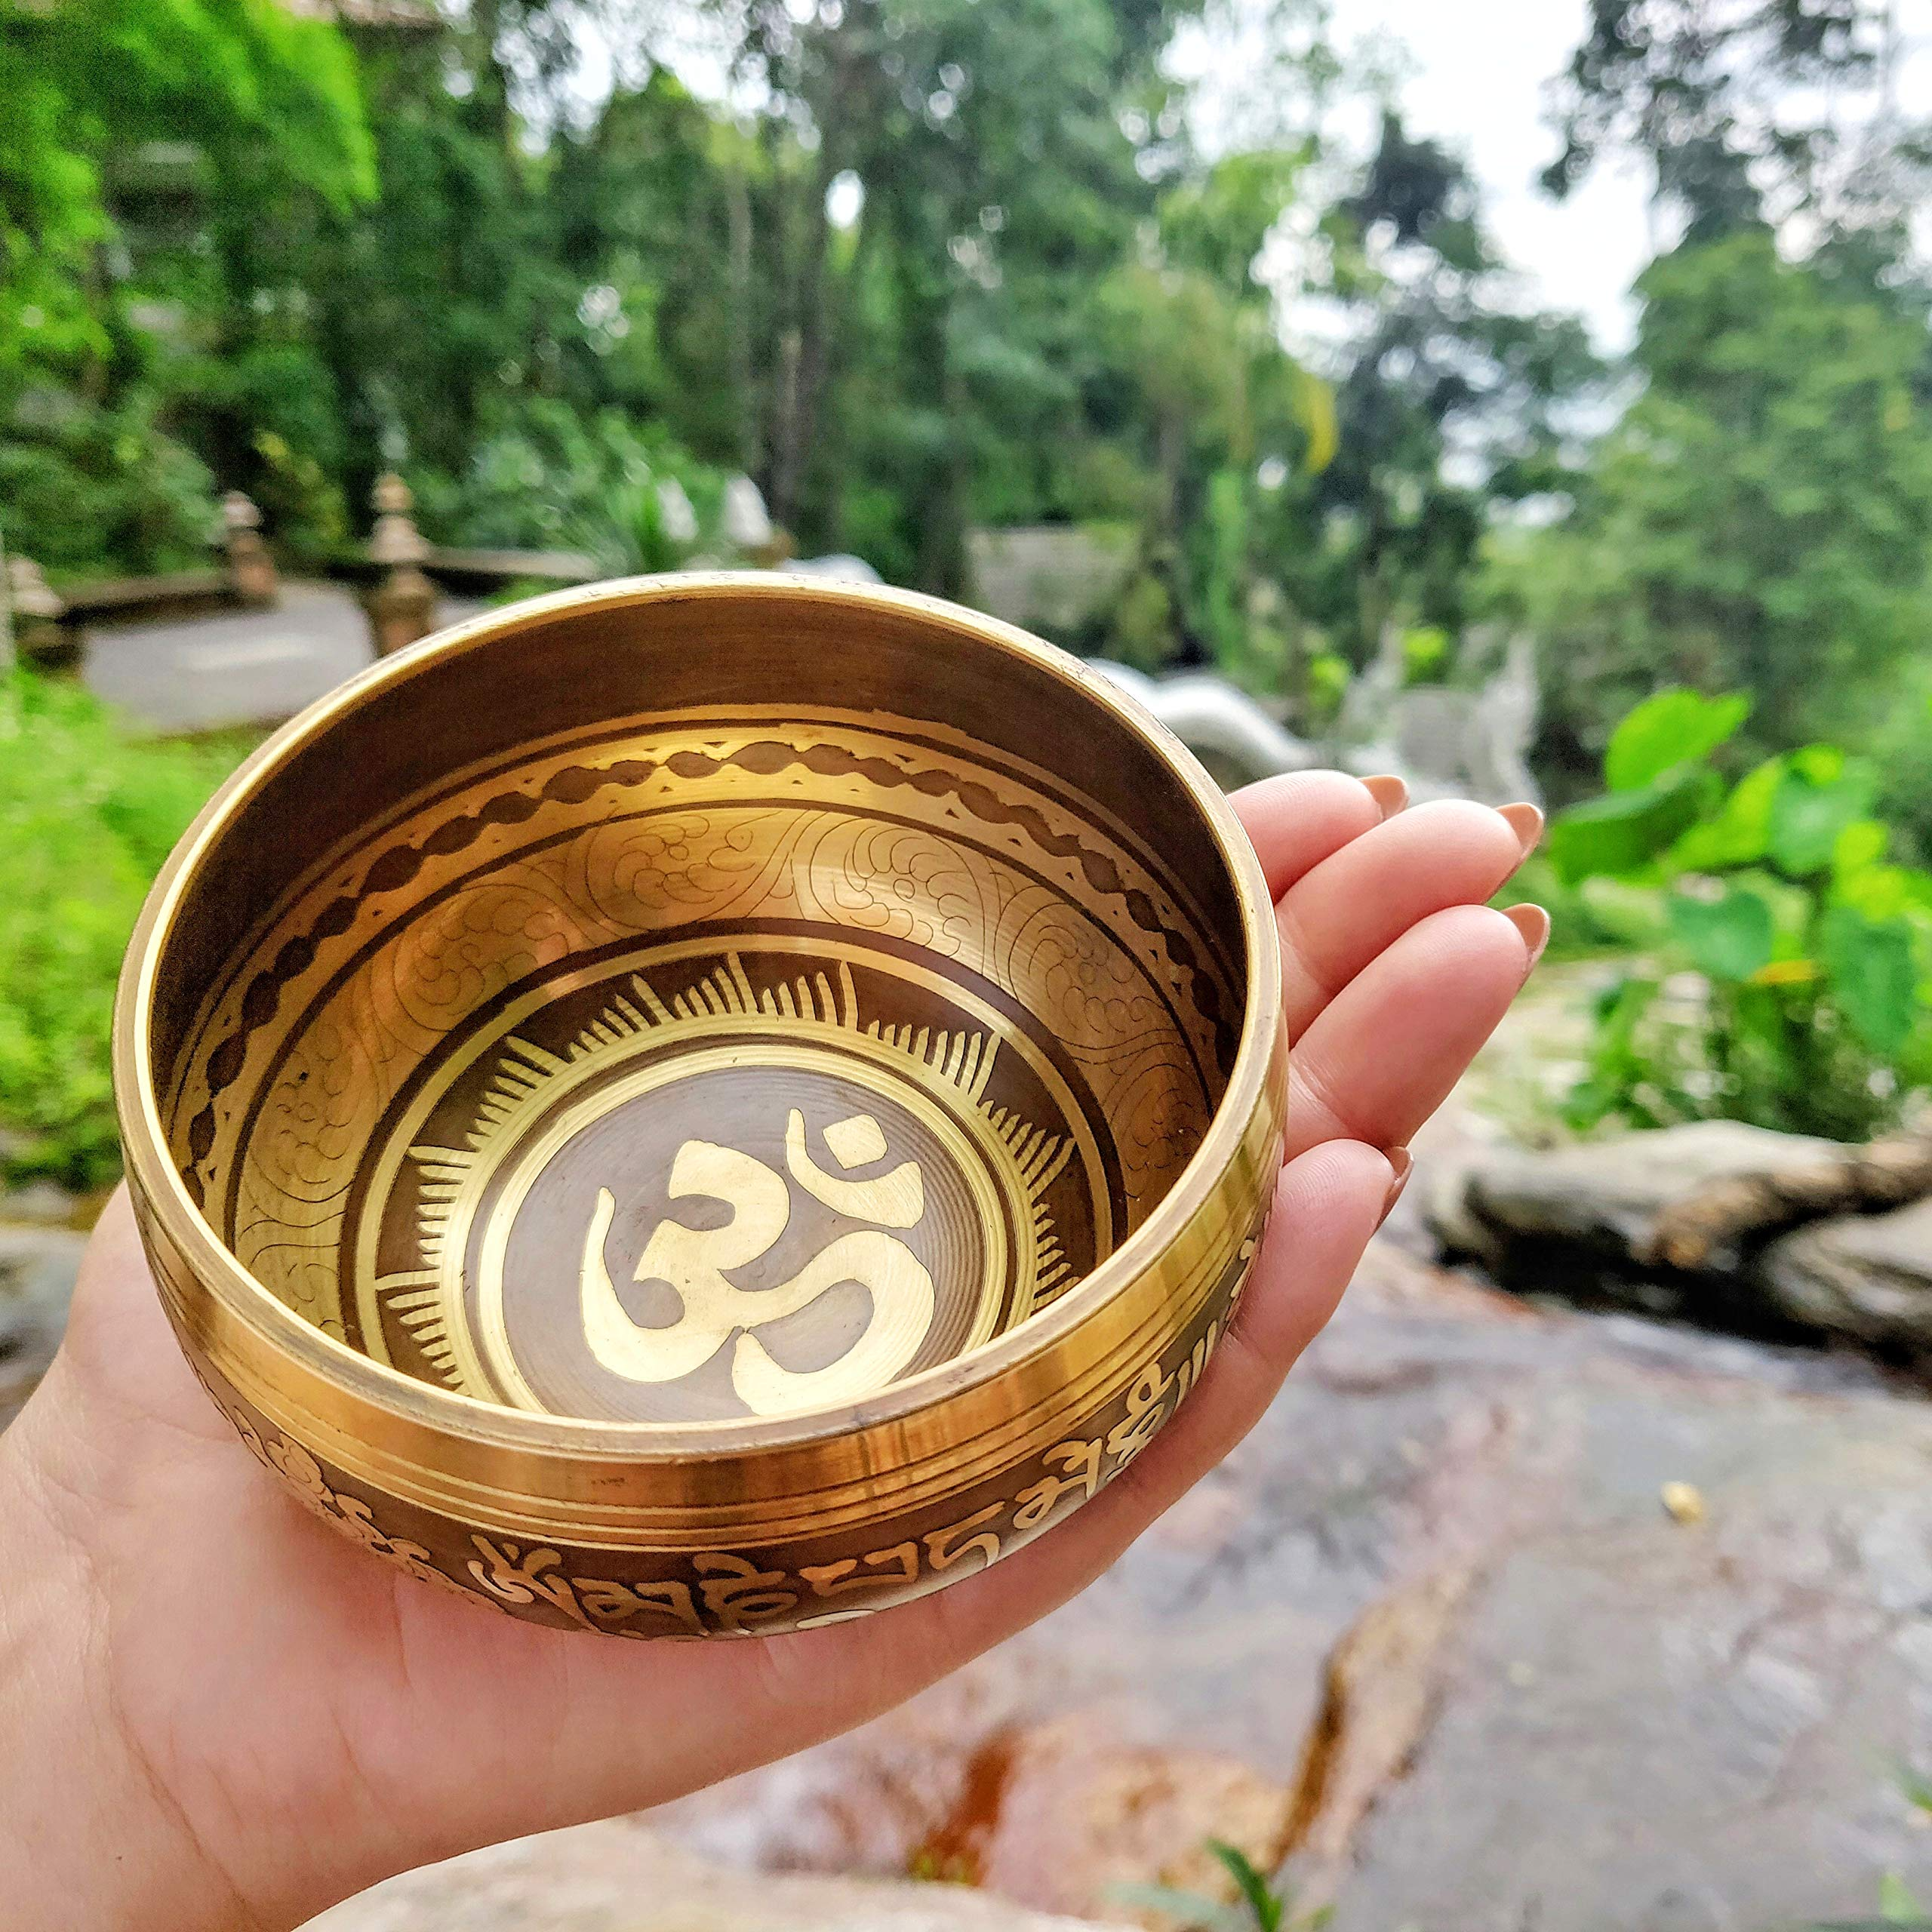 Tingsha Tibetan Singing Bowl Set by Zen Mind Design - with Tingsha Cymbals, Weighted Mallet, Handmade Cushion, Eco-Friendly Box and E-Book - for Yoga and Stress Relief Meditation by Zen Mind Design (Image #3)